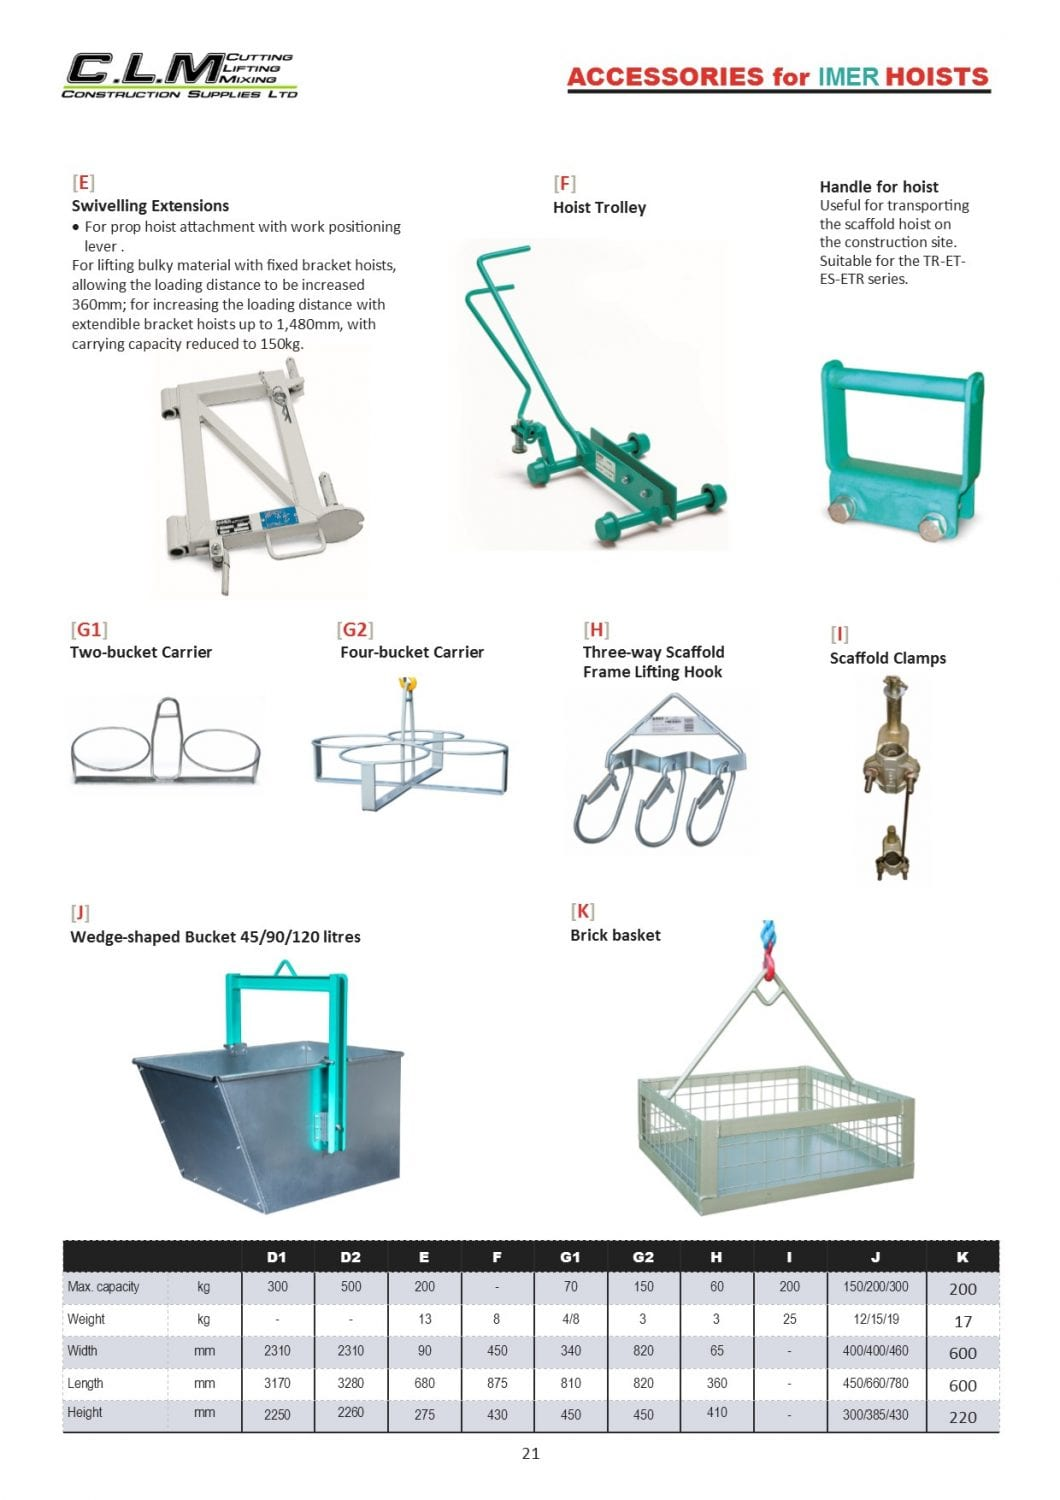 PAGE 21 Accessories for IMER Hoists